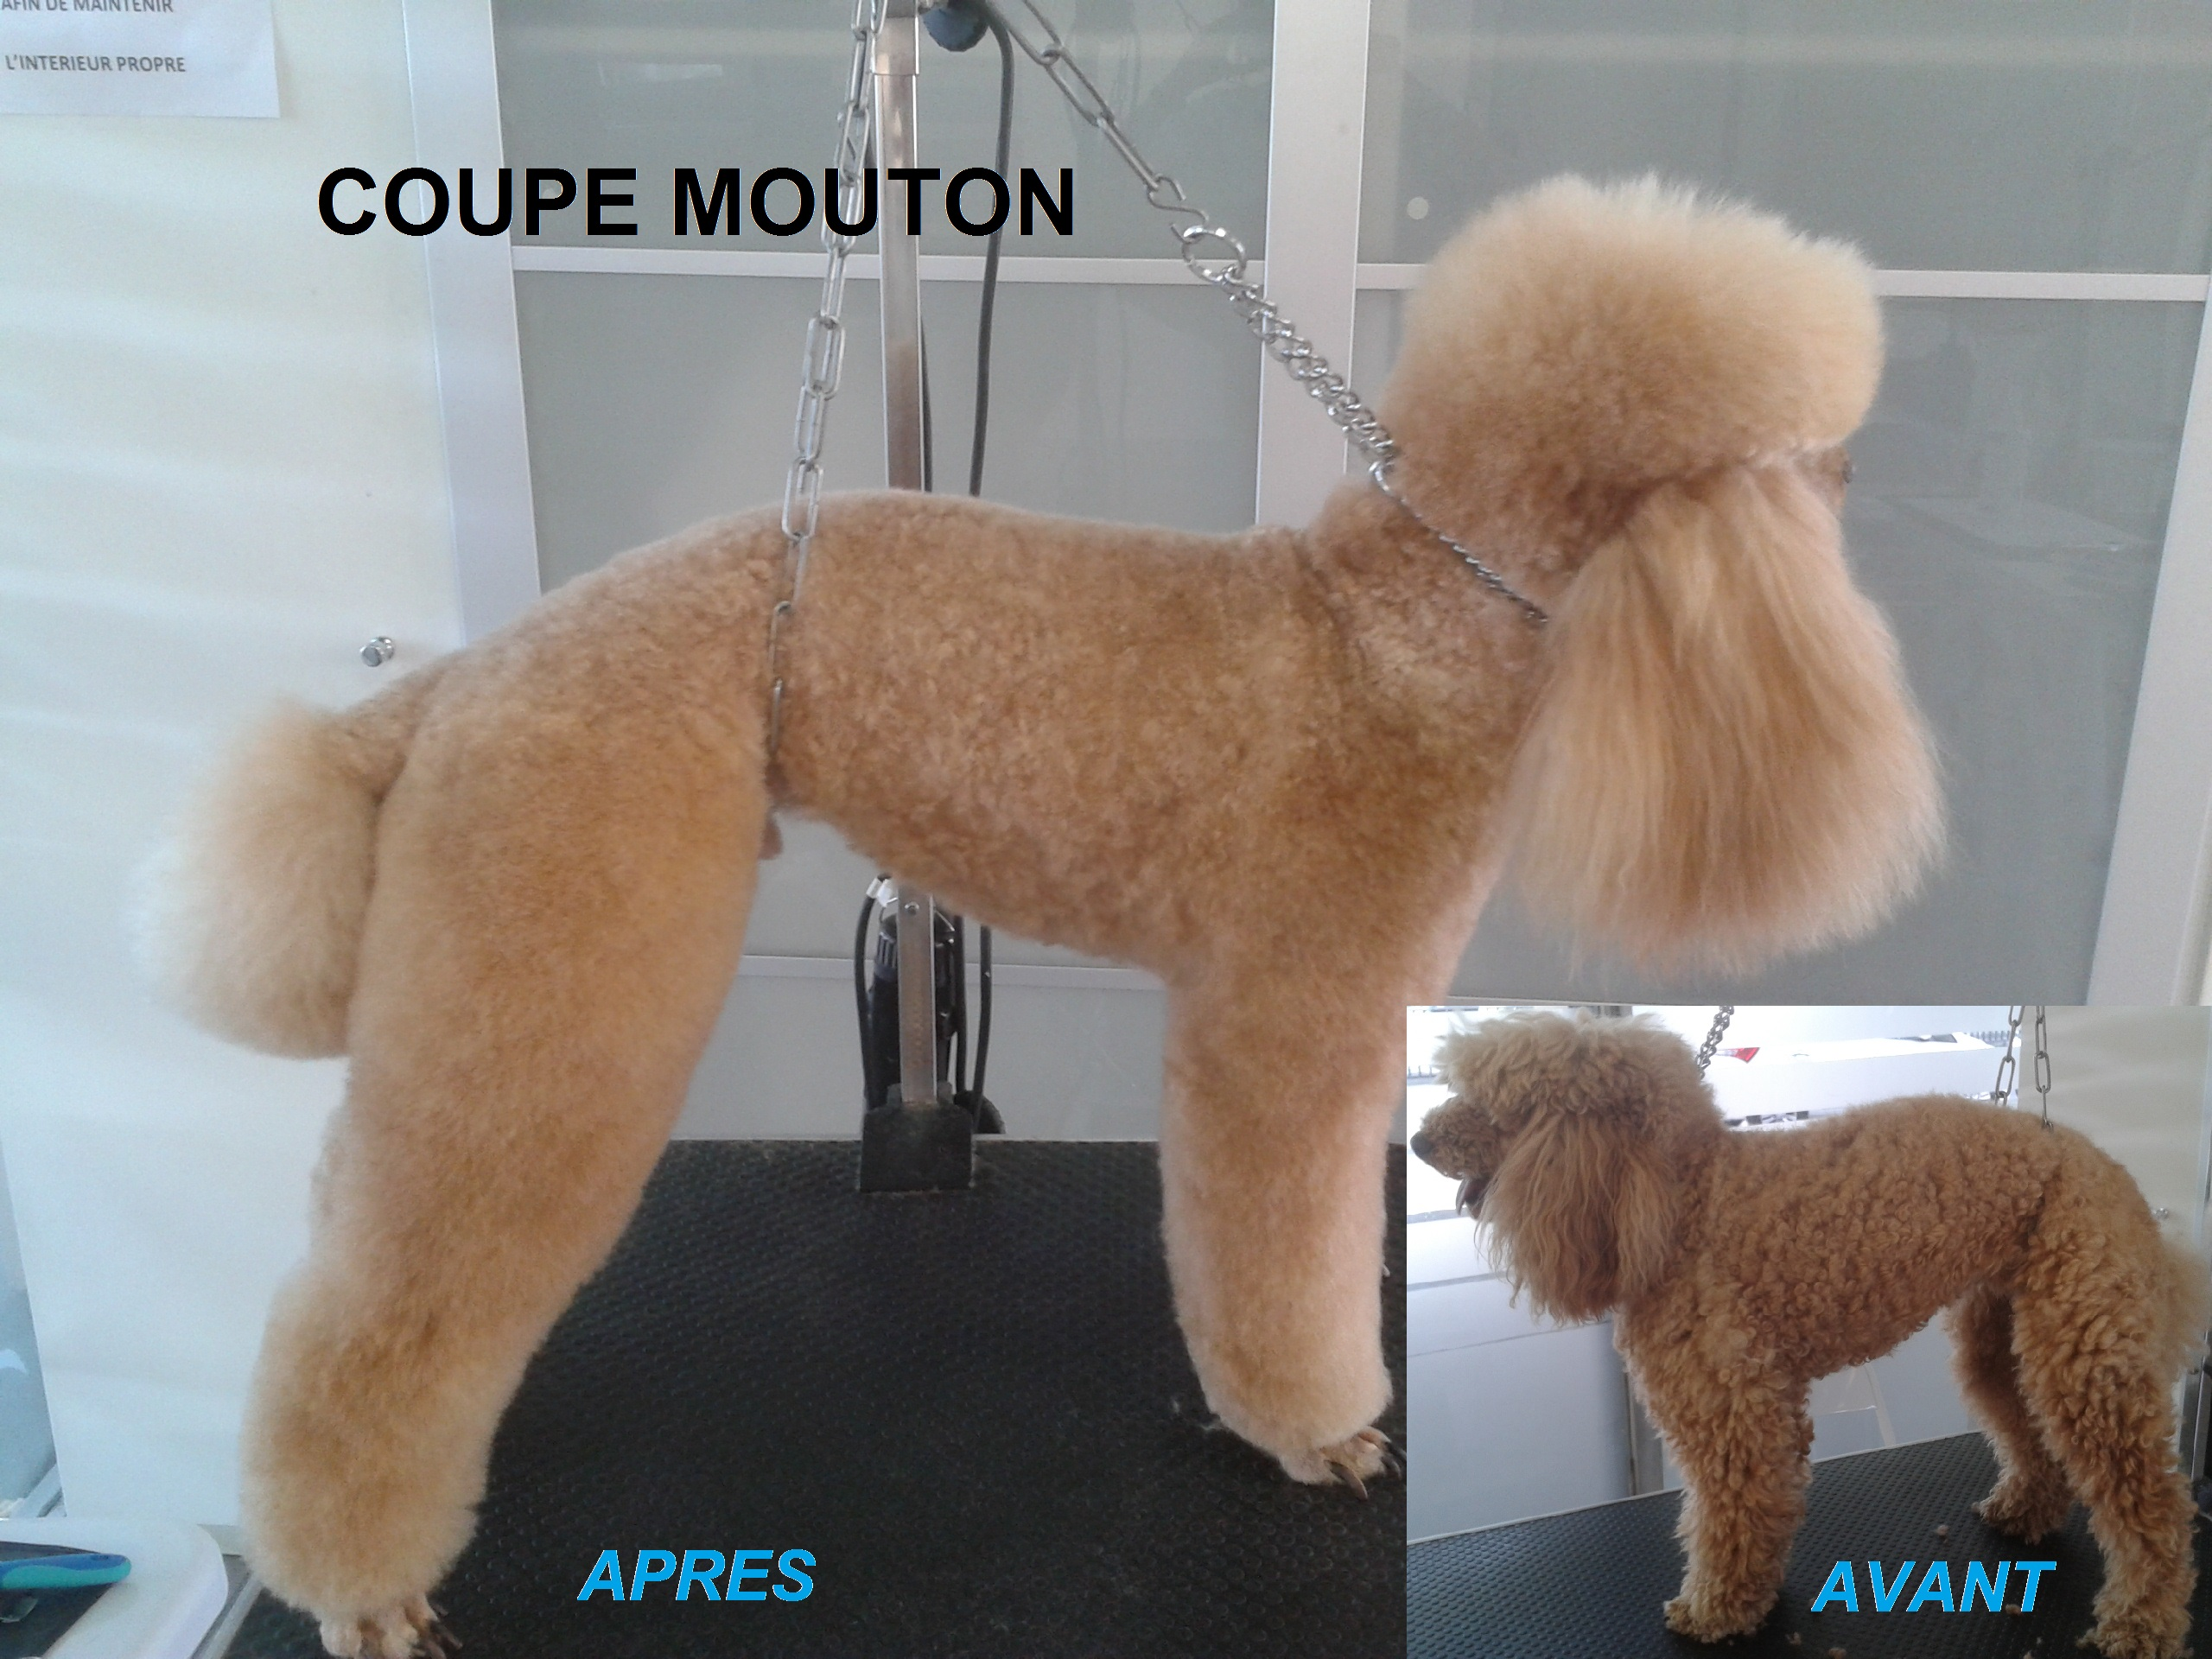 caniche coupe mouton 1 avant après toilettage toulouse lovely coussi'nets